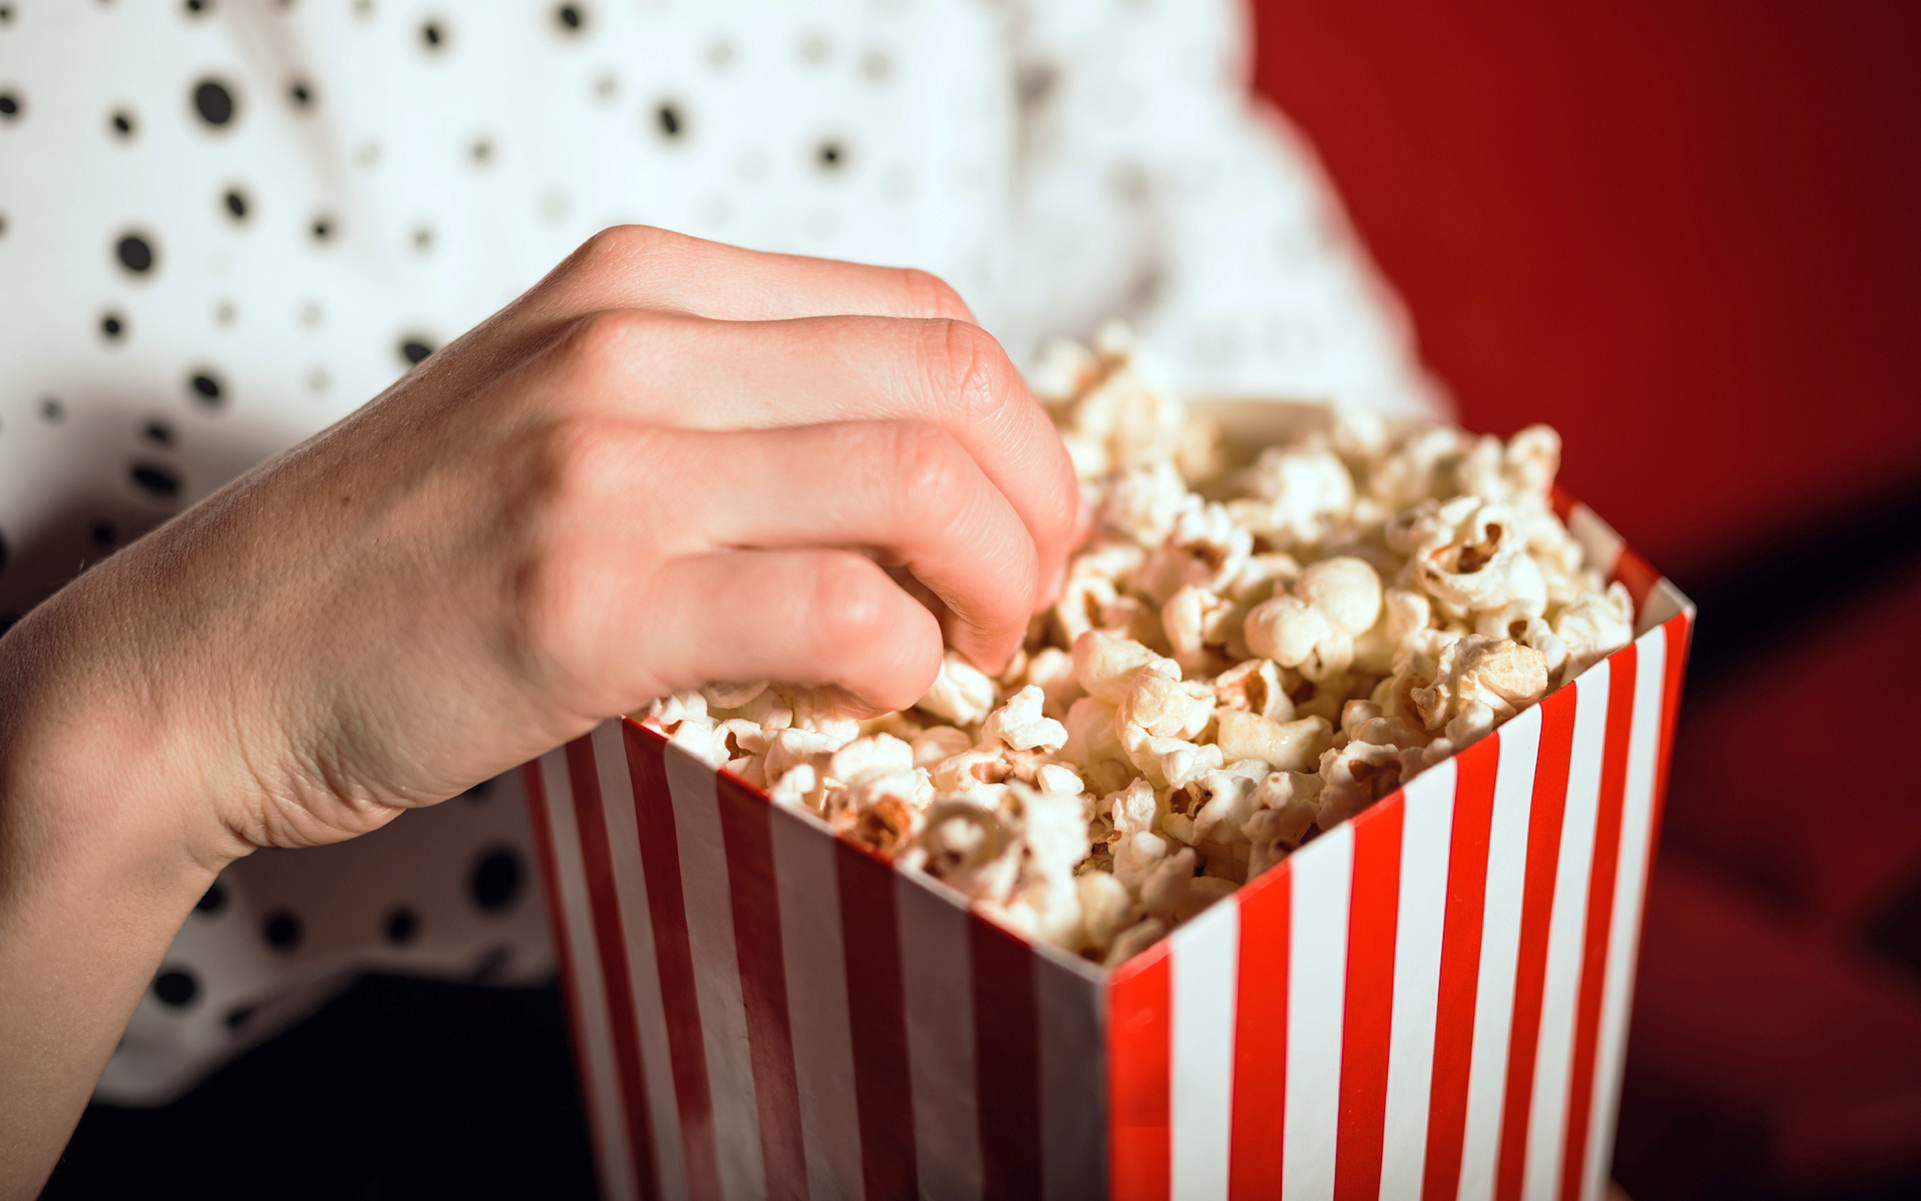 9 Things Popcorn Kush May Make You Do, According to Leafly Reviewers